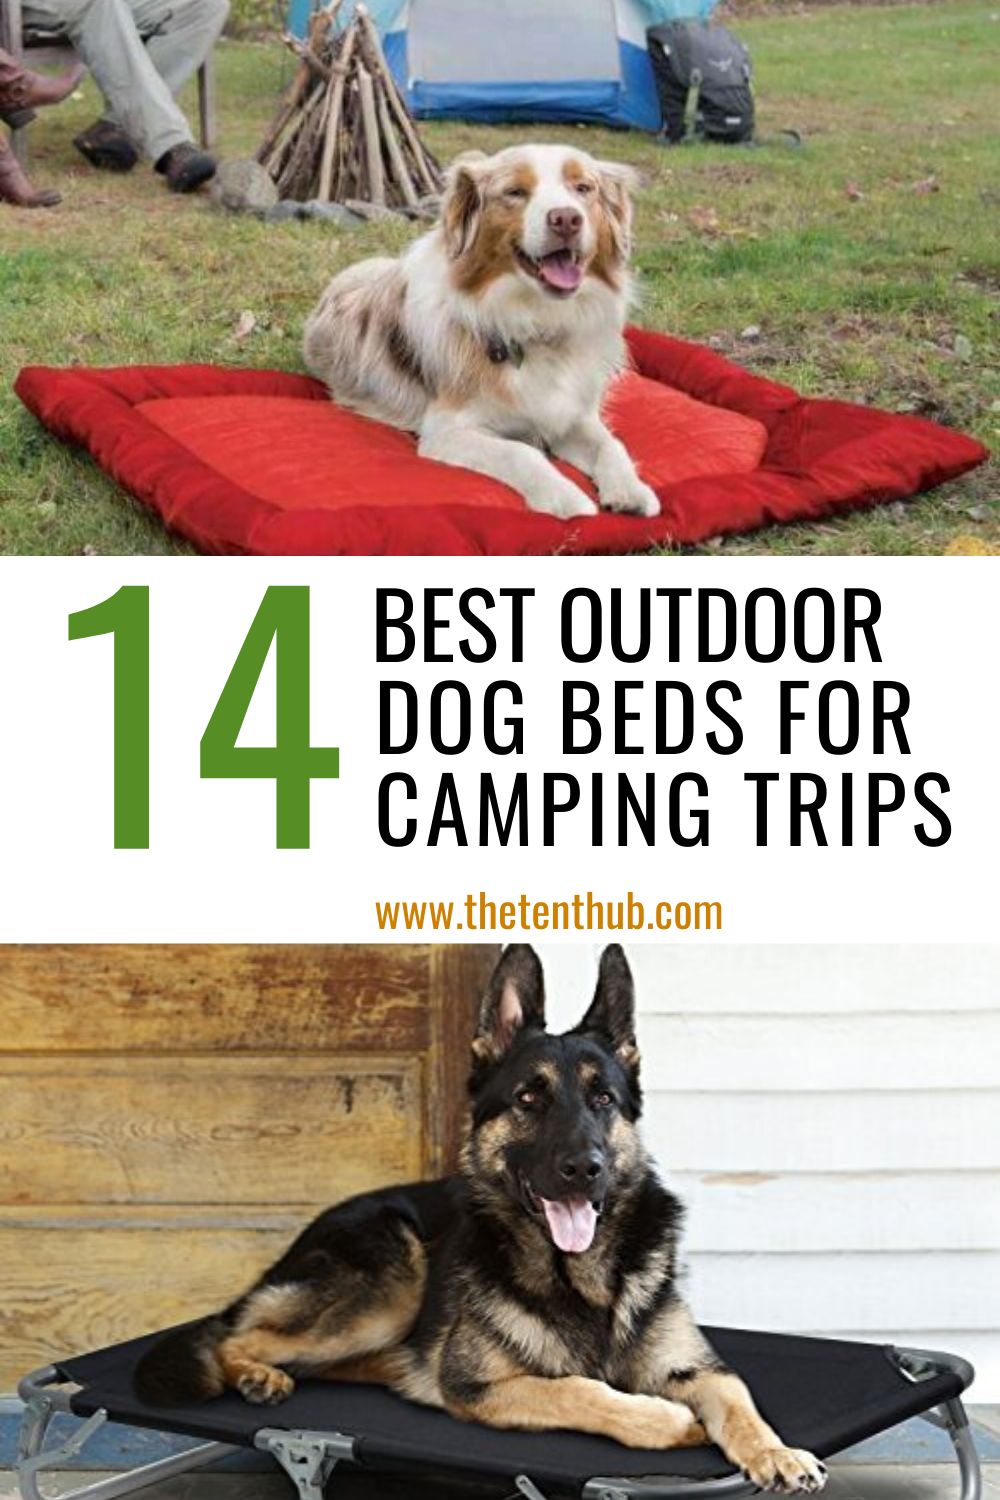 14 Best Outdoor Dog Beds (With images) Dog camping